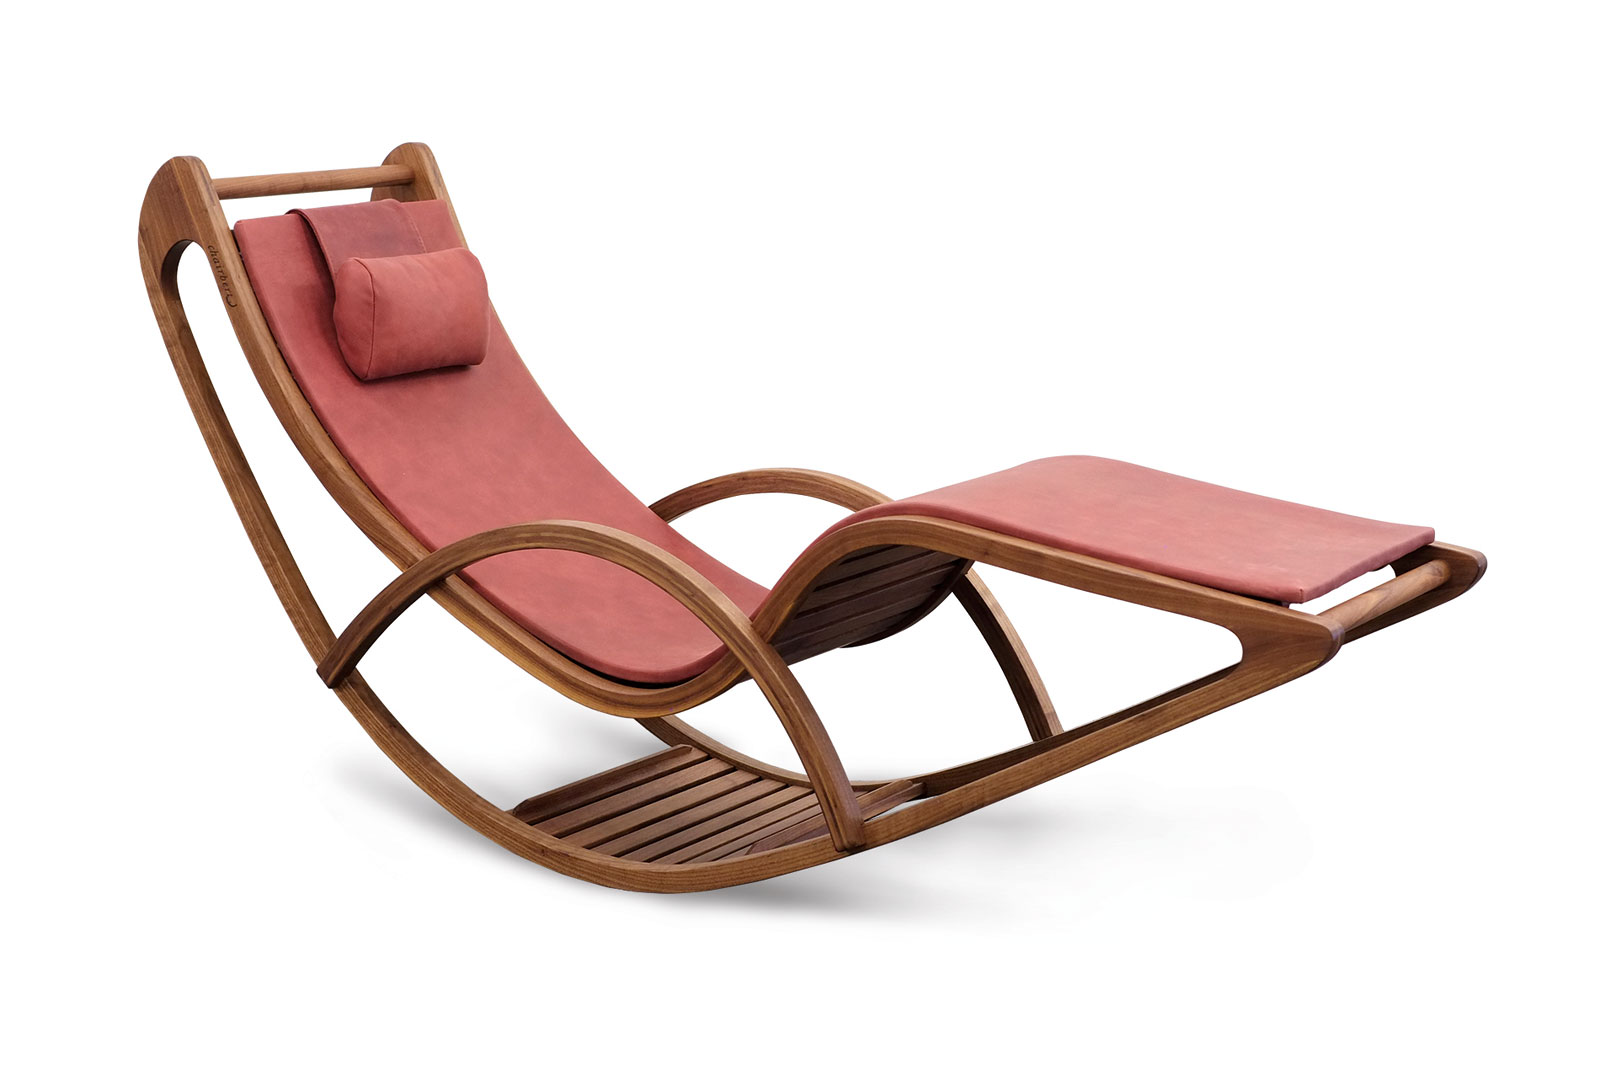 Wooden lounge chair, Swiss product with leather upholstery